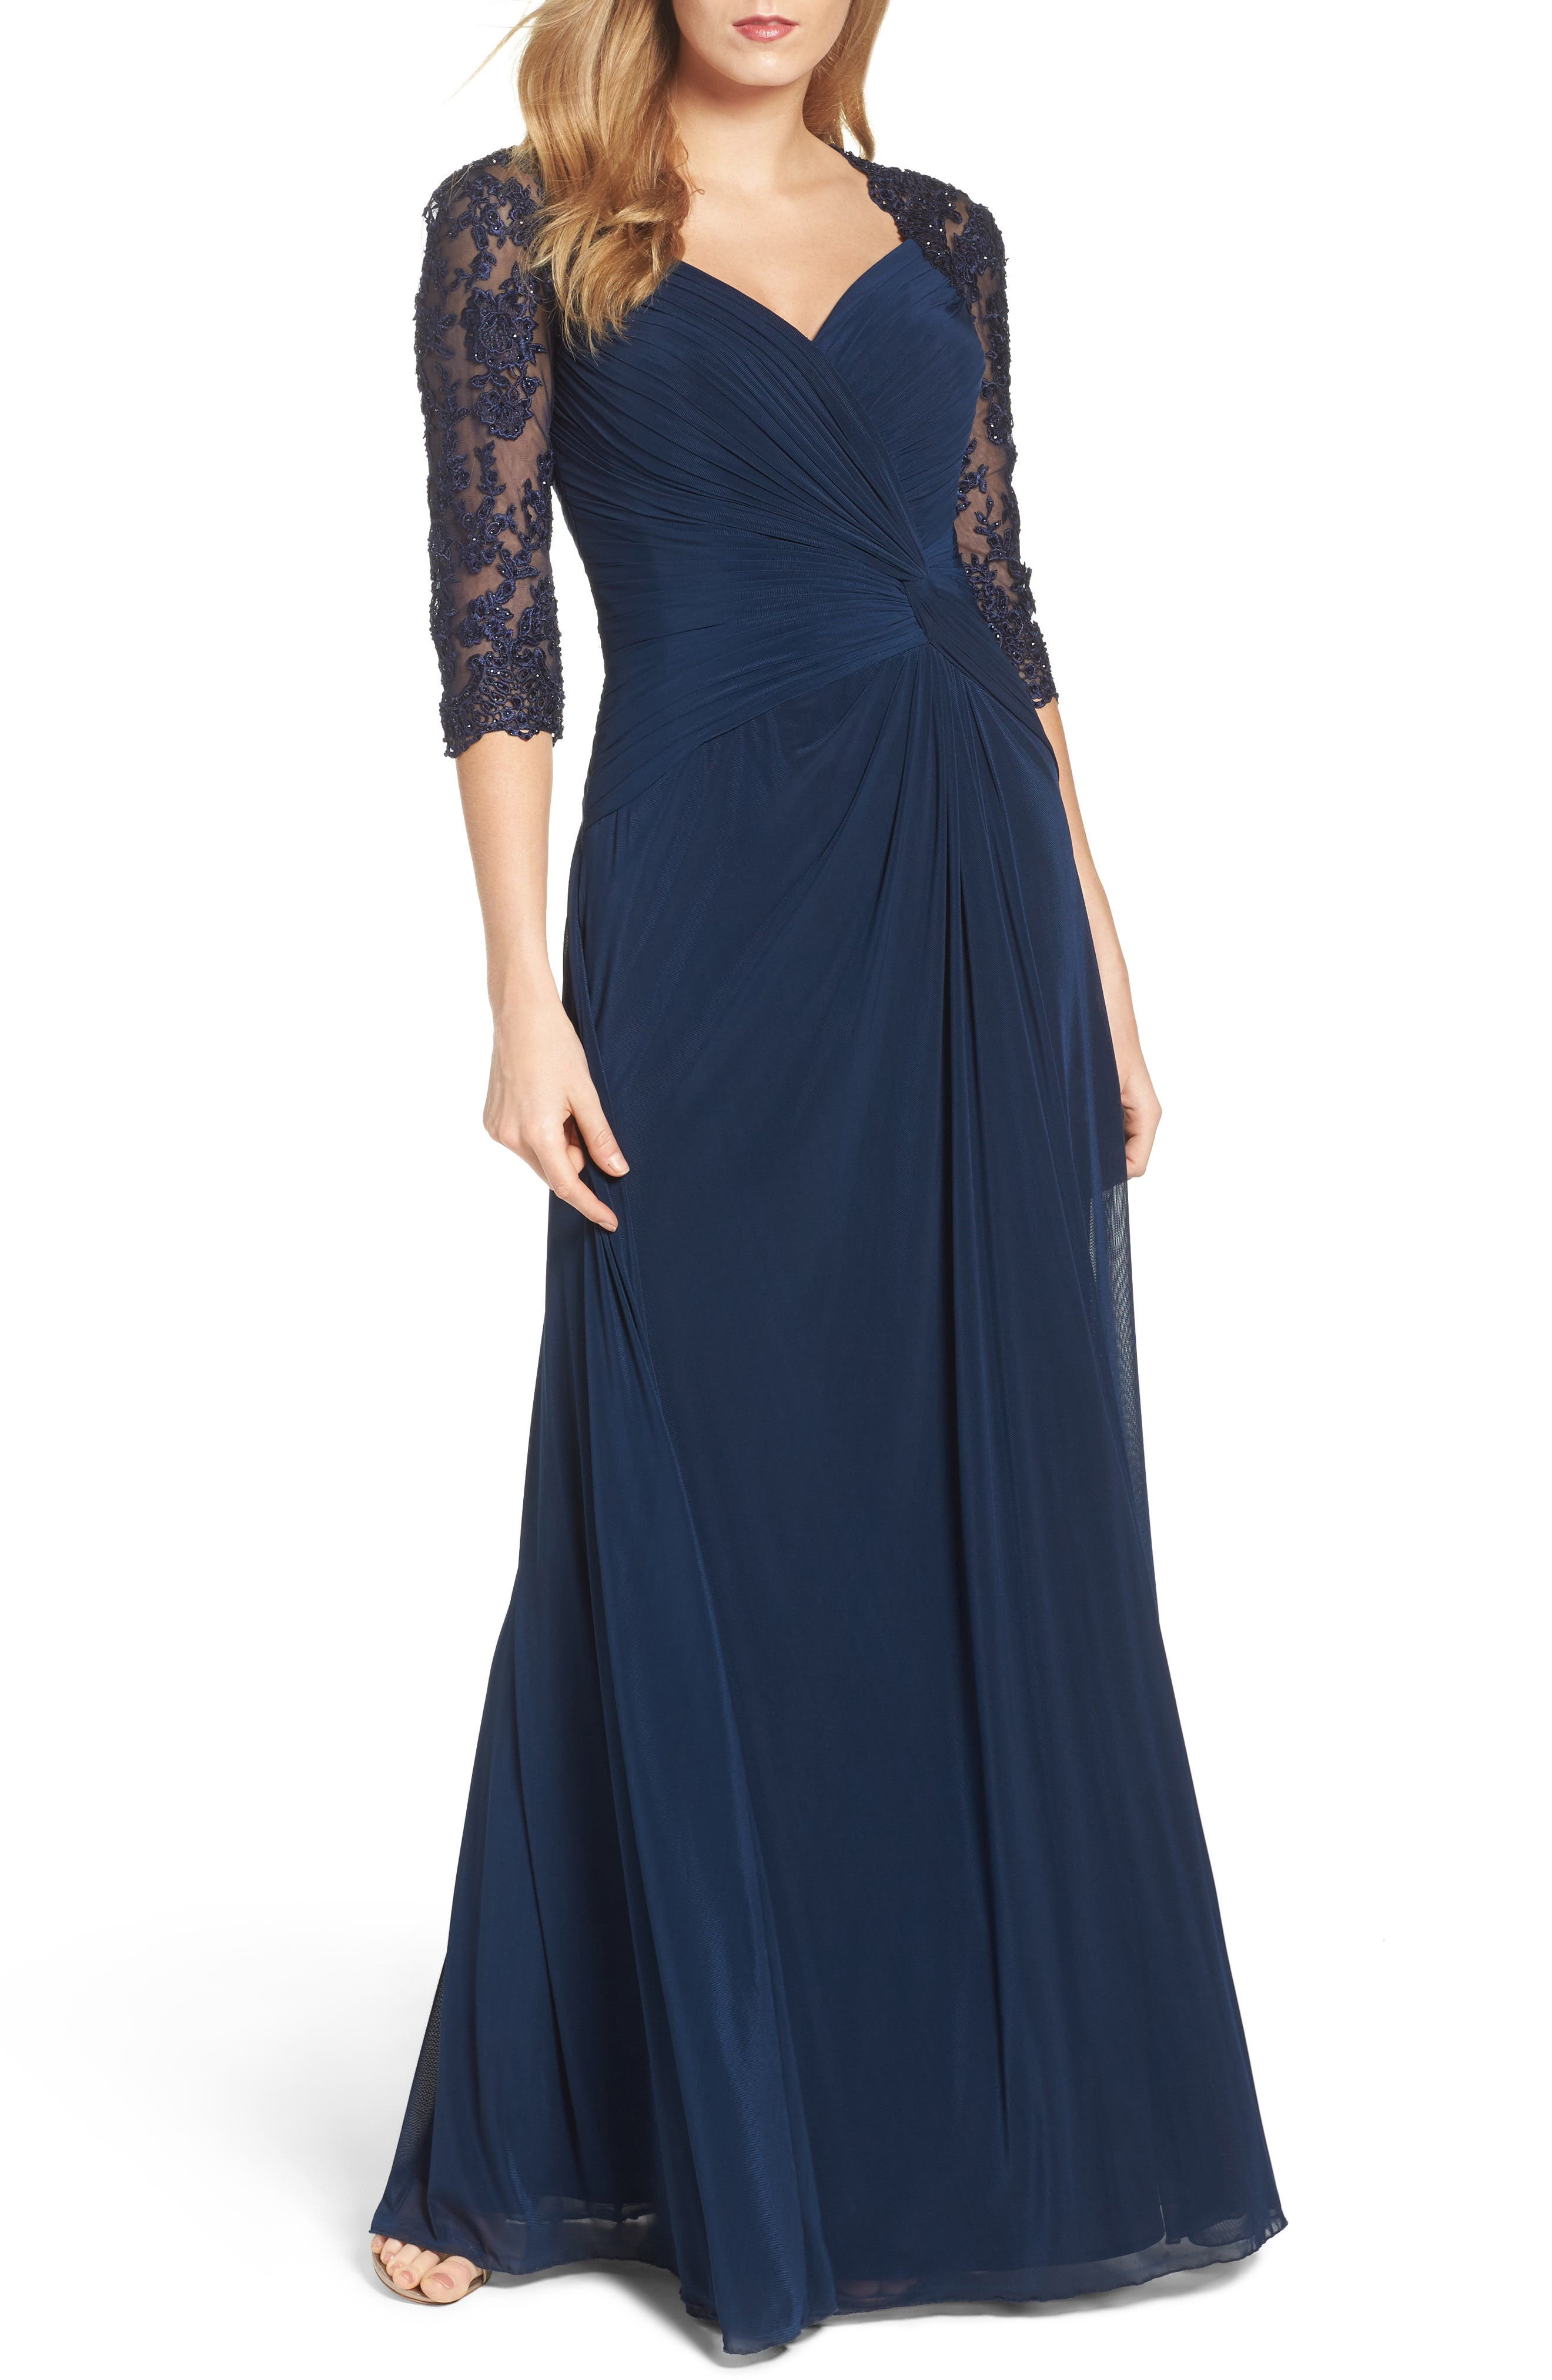 Alternate Image 1 Selected - La Femme Lace & Net Ruched Twist Front Gown